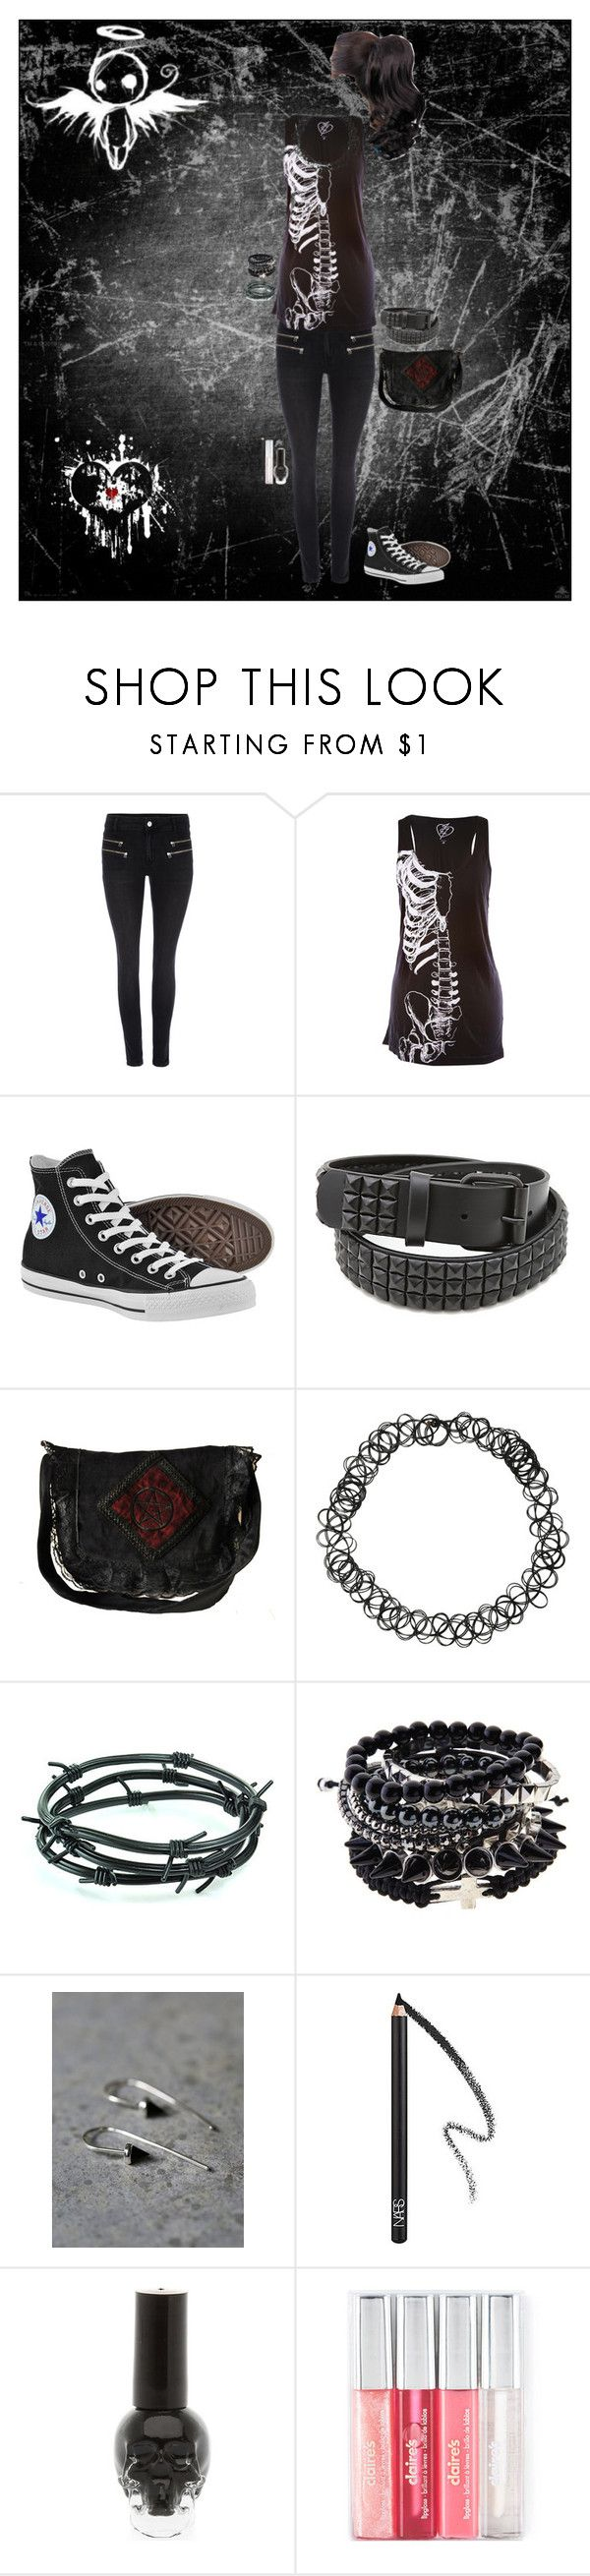 """""""Look 1-50"""" by candy-coated-doom ❤ liked on Polyvore featuring Modström, Iron Fist, Converse, Hot Topic, Barbed, Free People, NARS Cosmetics, emo and HIWIDIHS"""